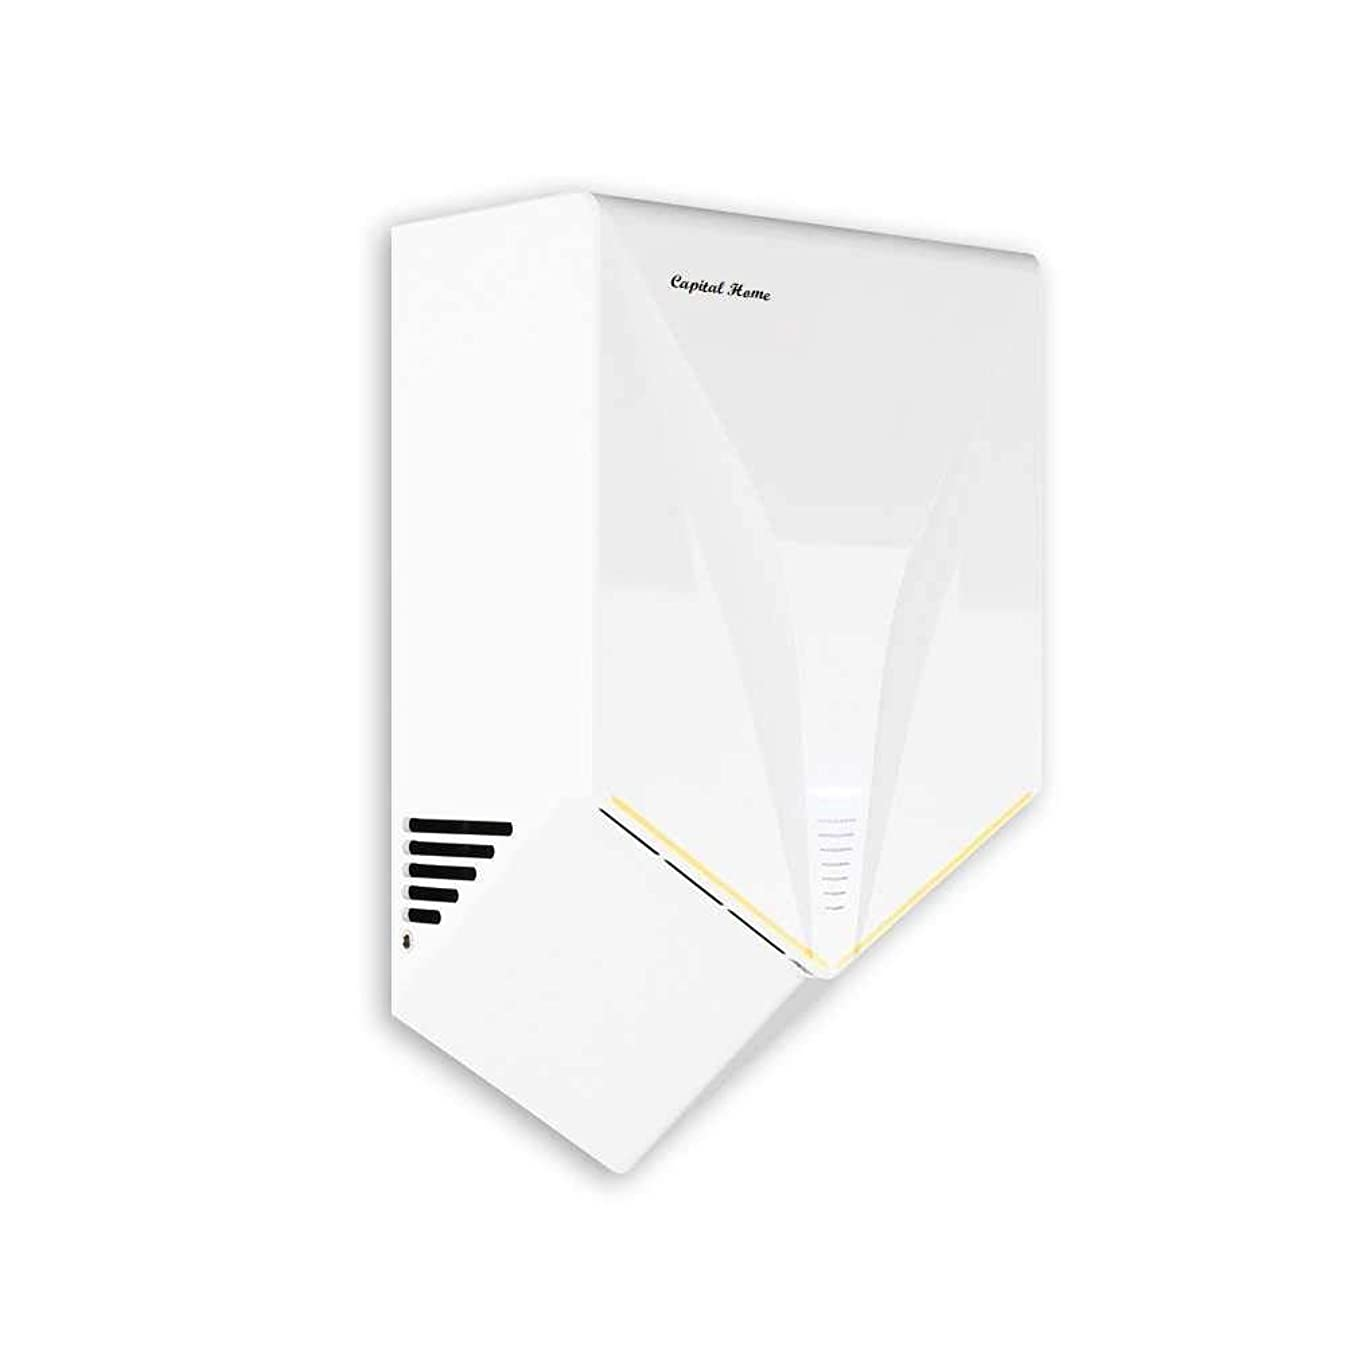 Capital Home Hand Dryer, Commercial Hand Dryer, Airblade Voltage AC110V- Dry Hands in 6s, Low Noise 60 dB, ABS Material 1000W (White)